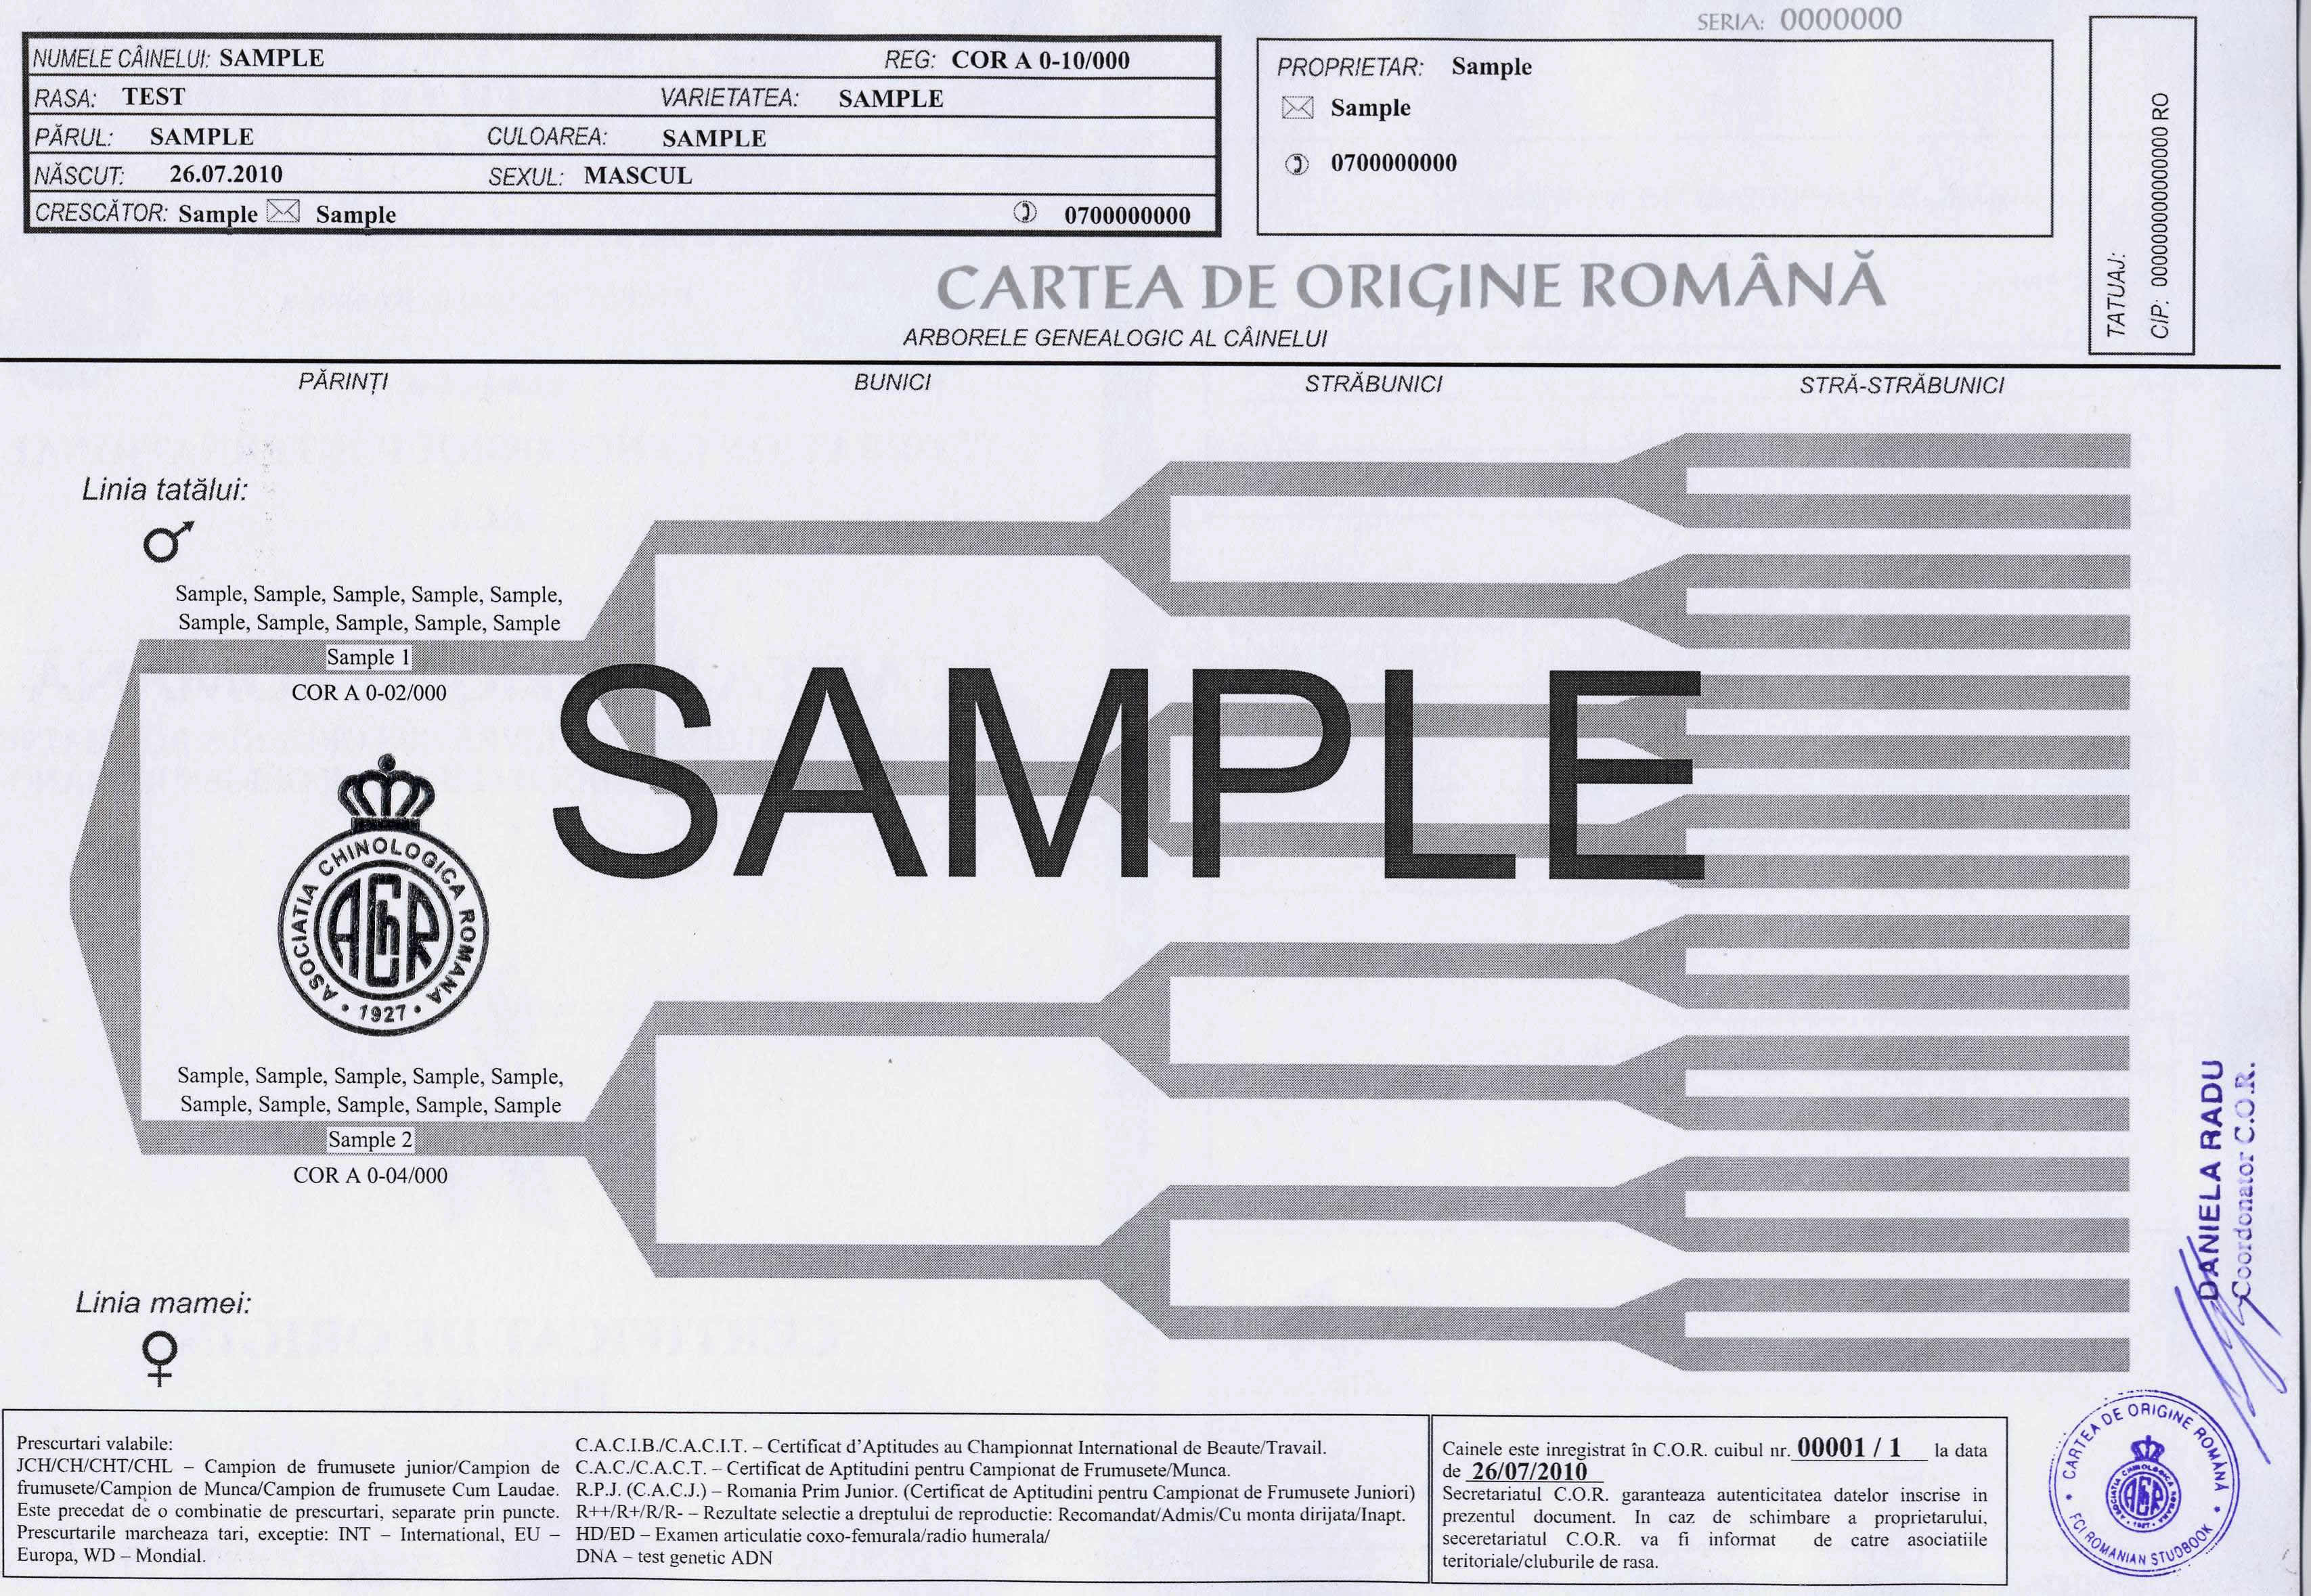 model de certificat din cartea de origine